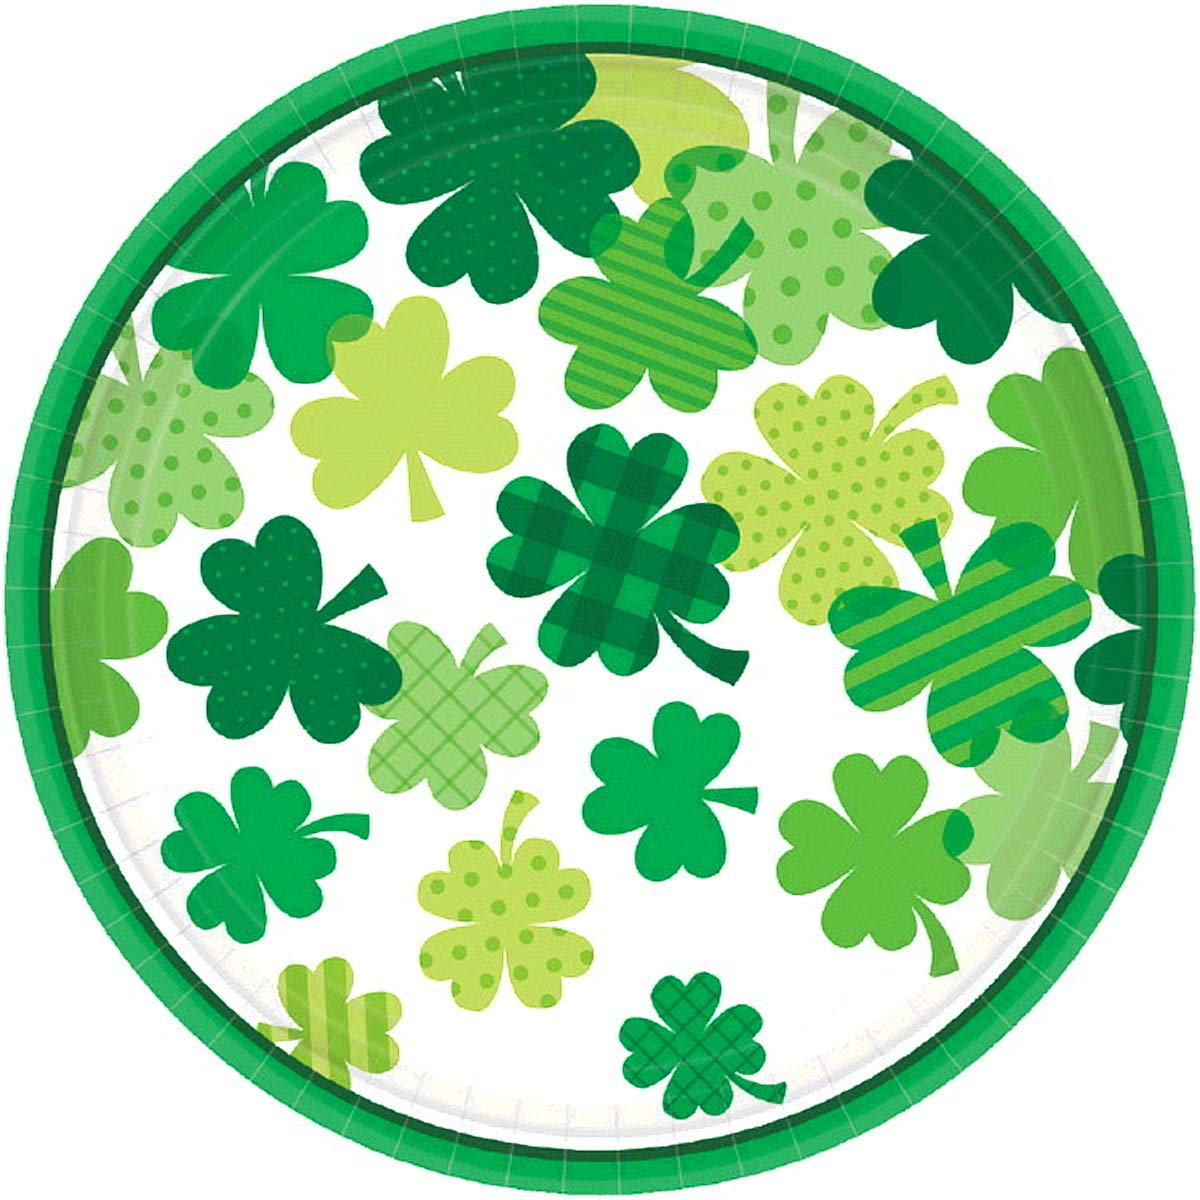 St. Patrick's Day Blooming Shamrocks Round Plate 7'', 12 Pk.